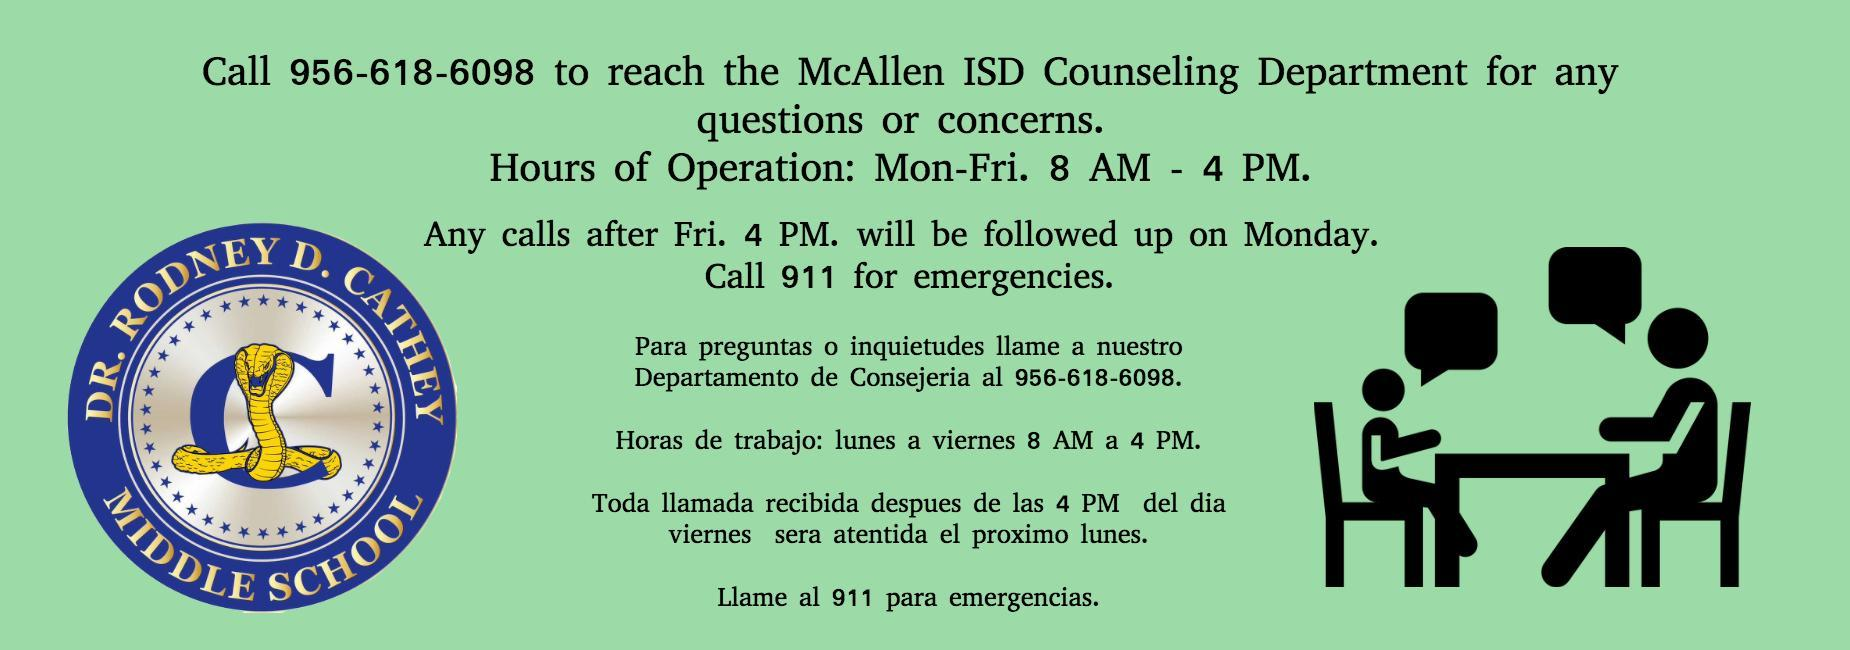 Call Counselors at 956 618 6098